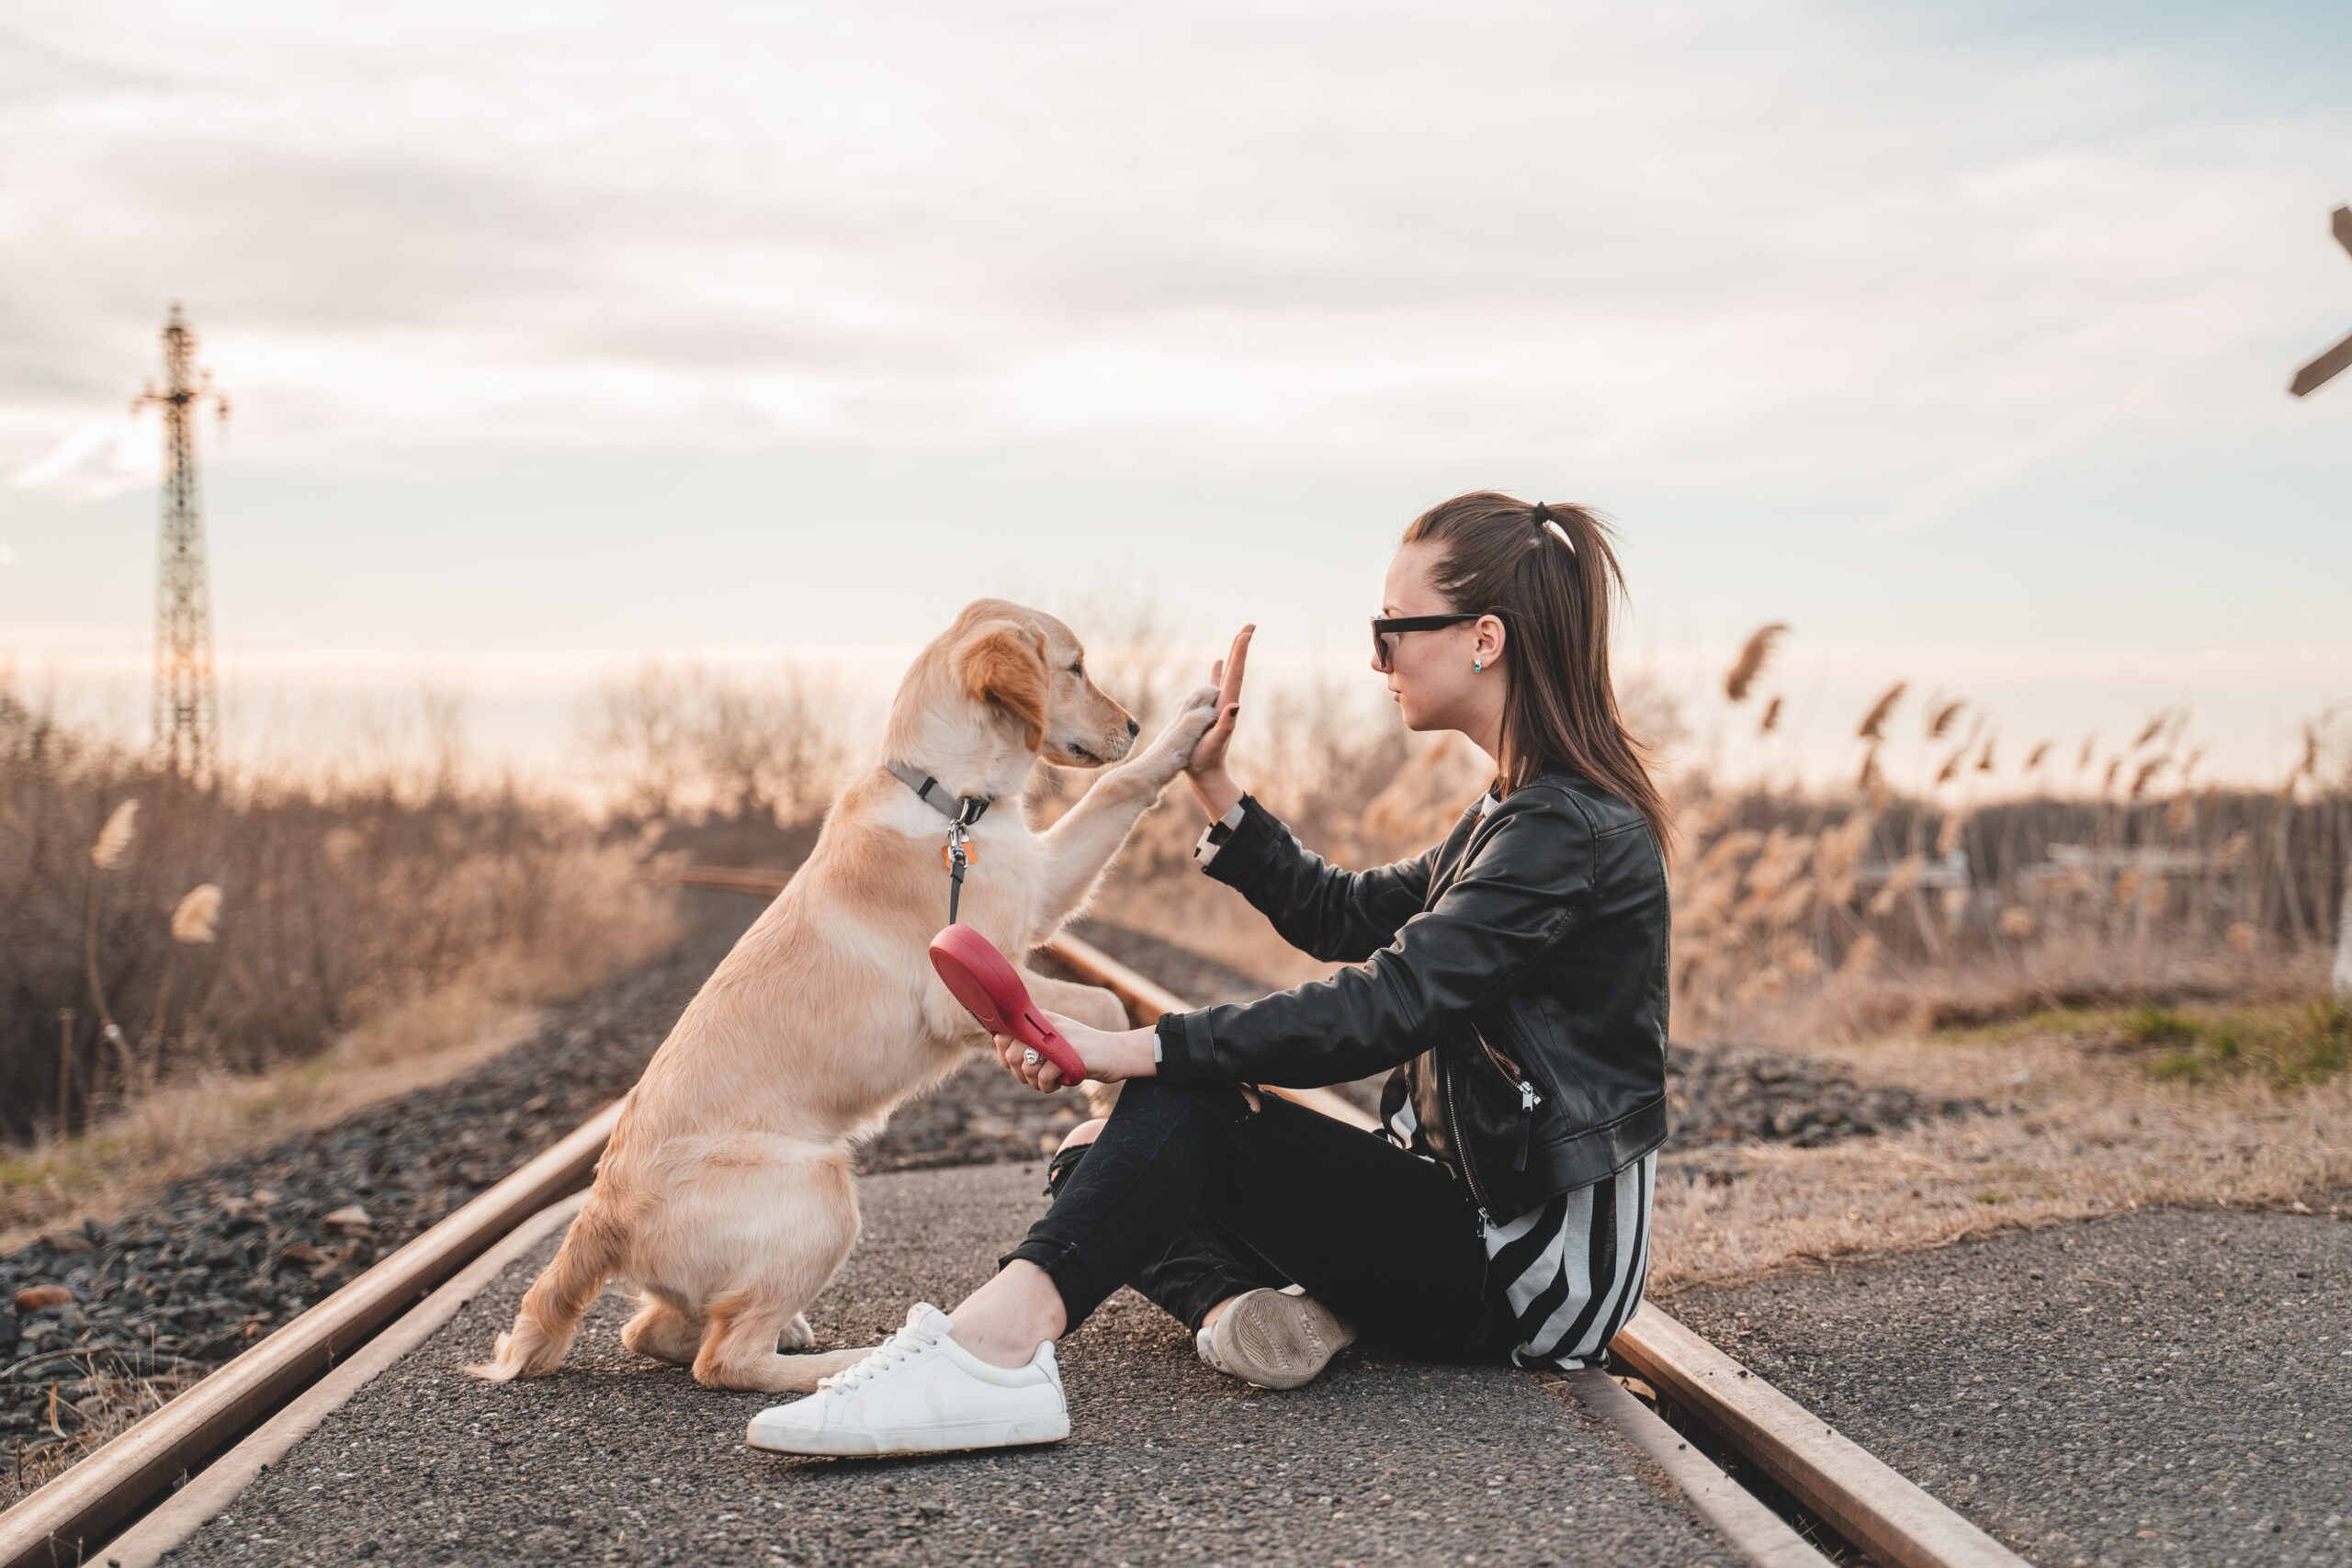 Human Animal Bond Benefits People And Pets | Benefits of pets | Animal Charity | Benefits of Having A Dog | Animal Rescue Charity